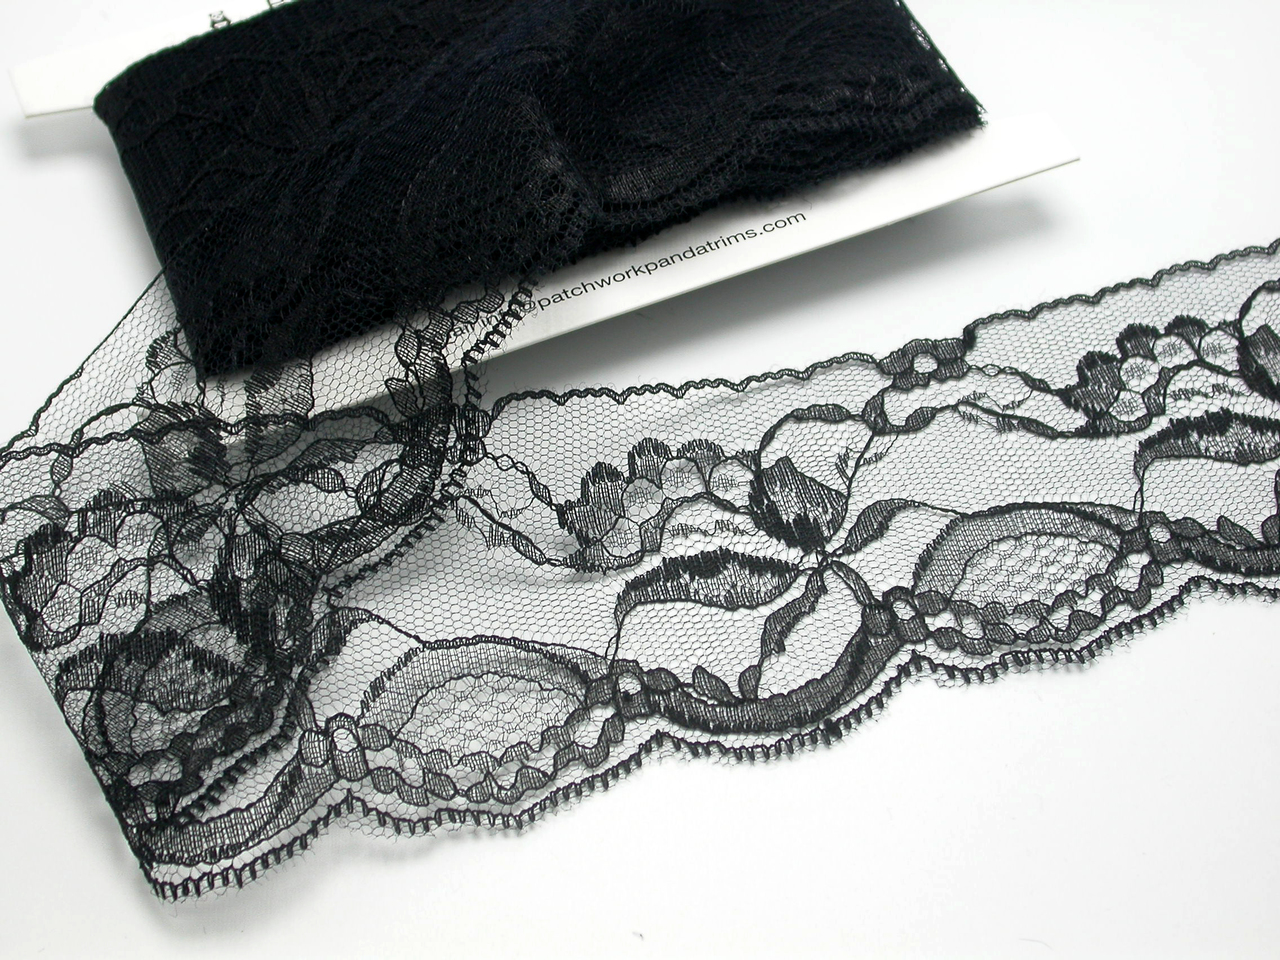 """Scalloped Raschel Lace 2 1/2"""" (63.5mm)  White  Ivory Pink  Black 50 Yards Closeout Bolt"""